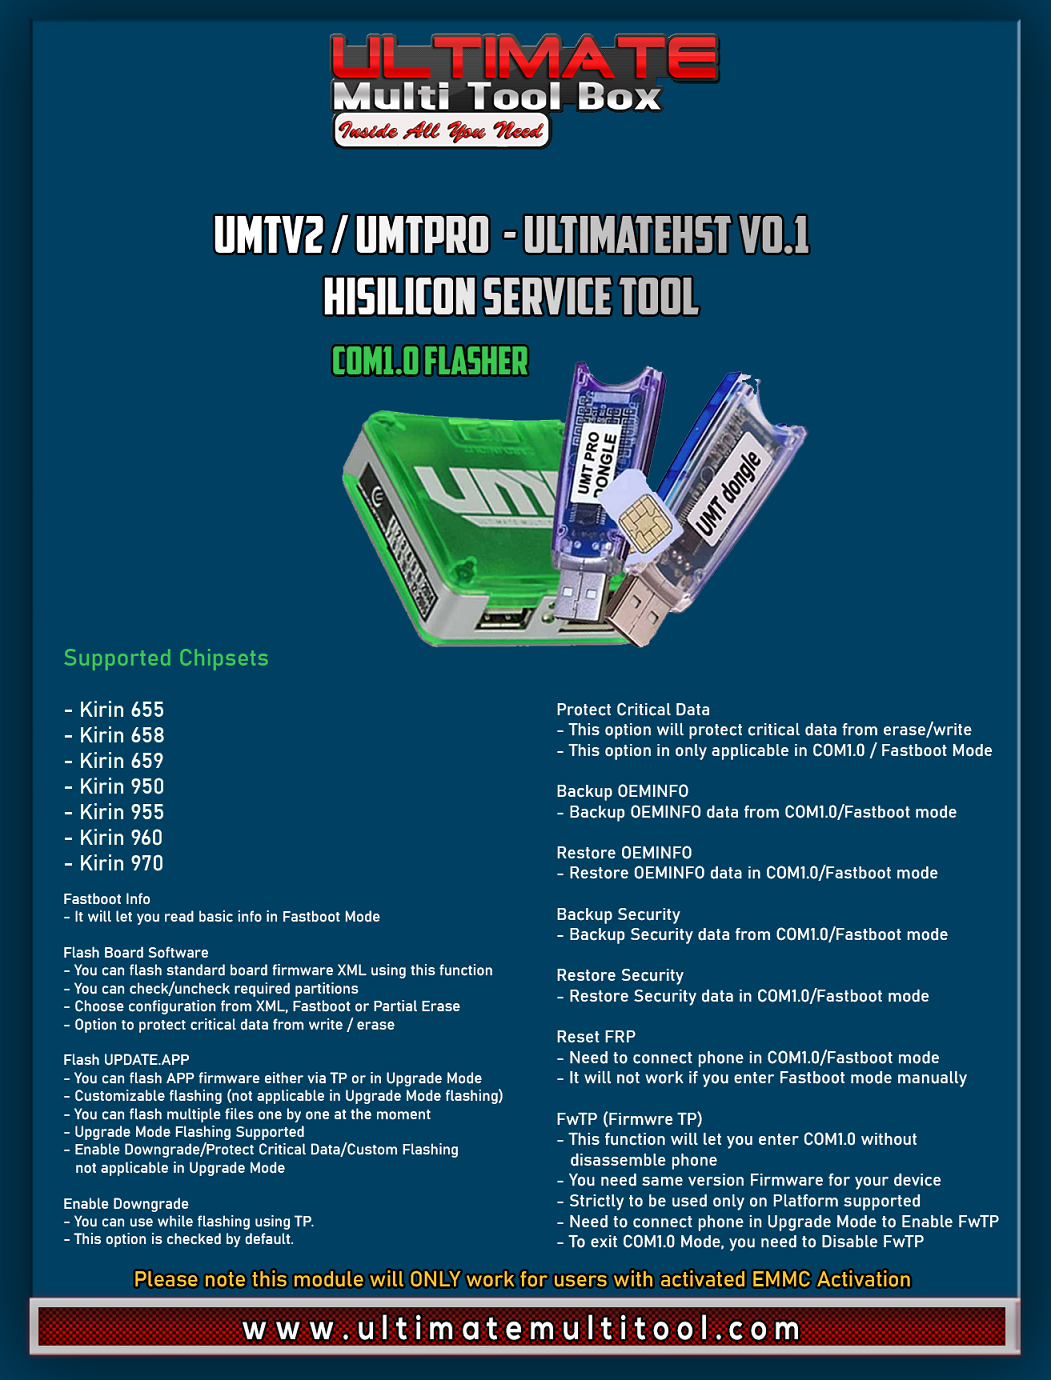 [07-12-20] UMTv2 / UMTPro - UltimateHST v0.1 - HiSilicon Service Tool Initial Release